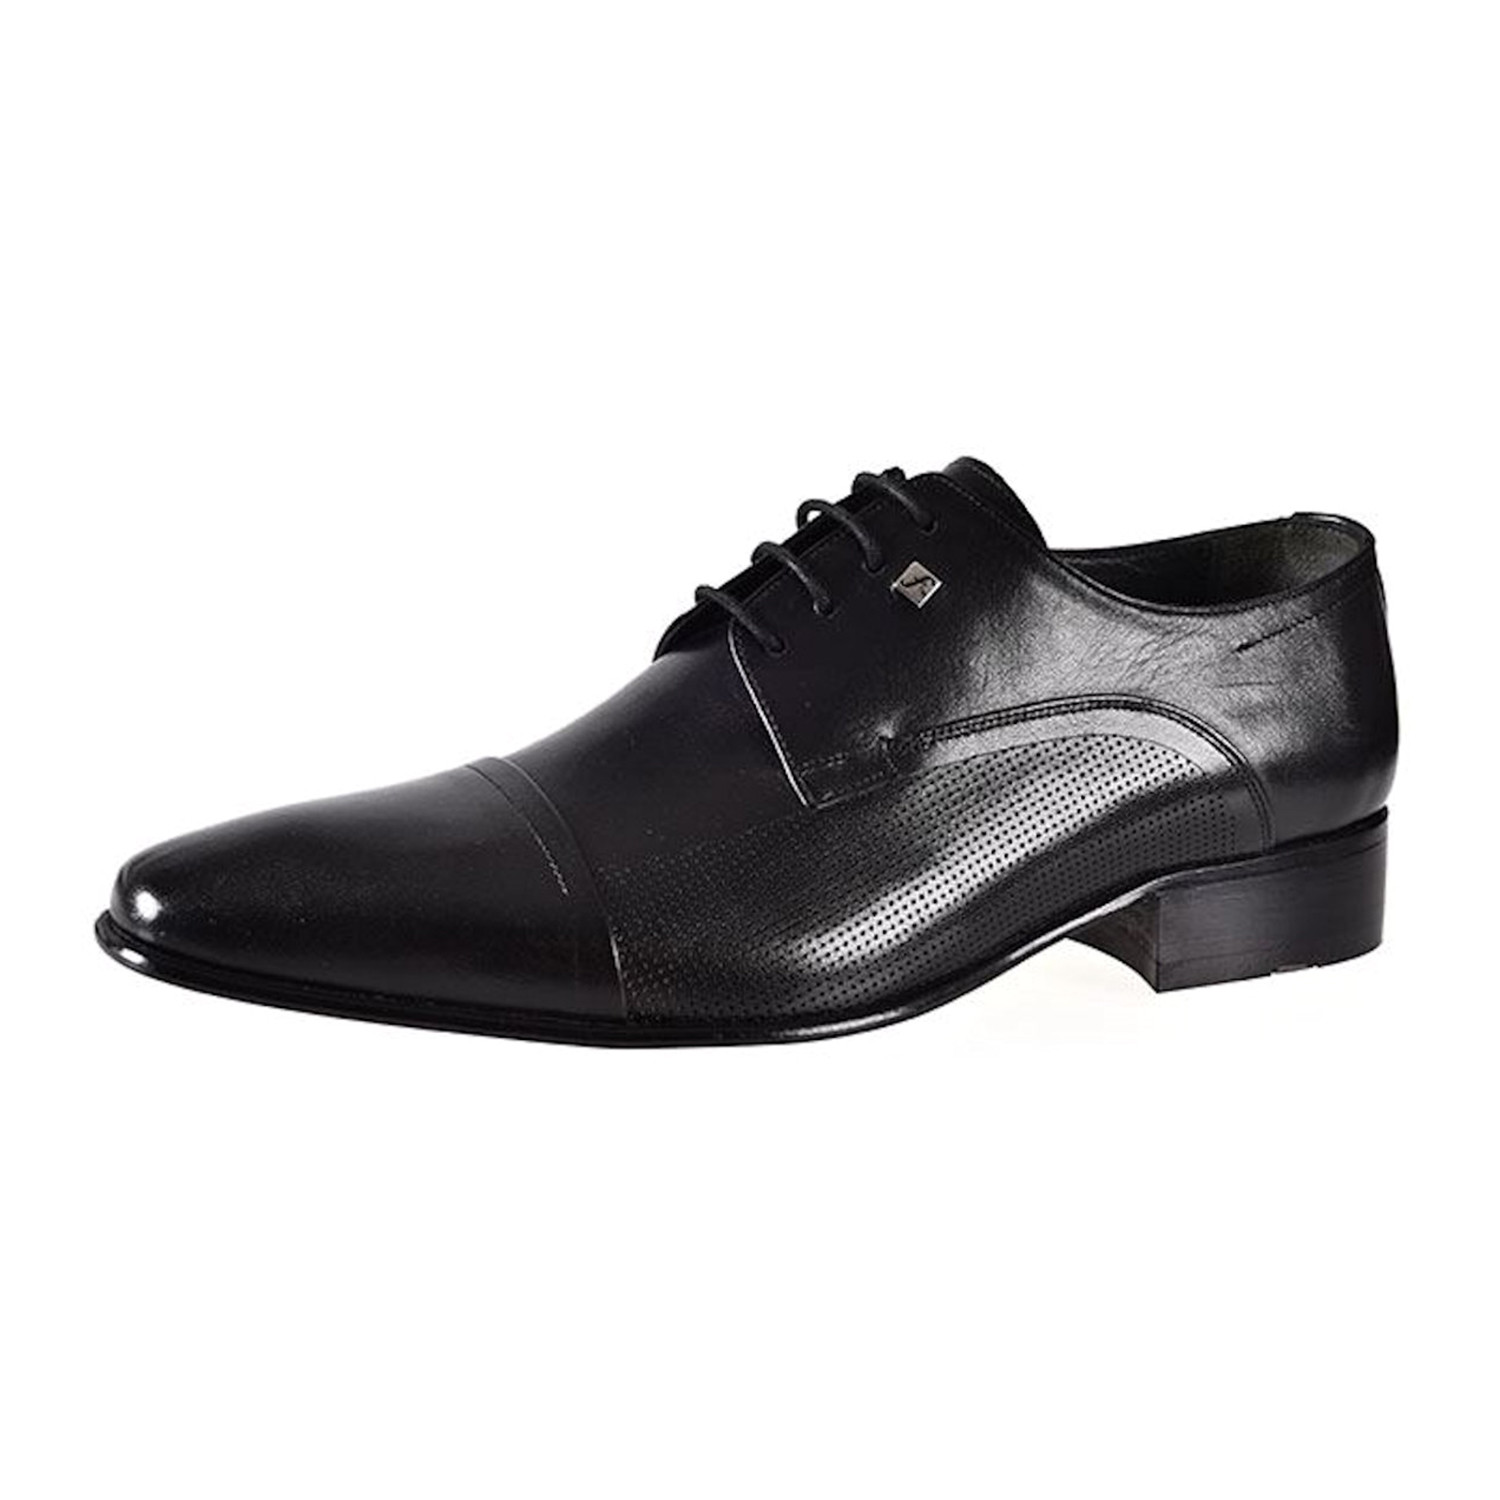 Pama Leather Dress Shoes Black